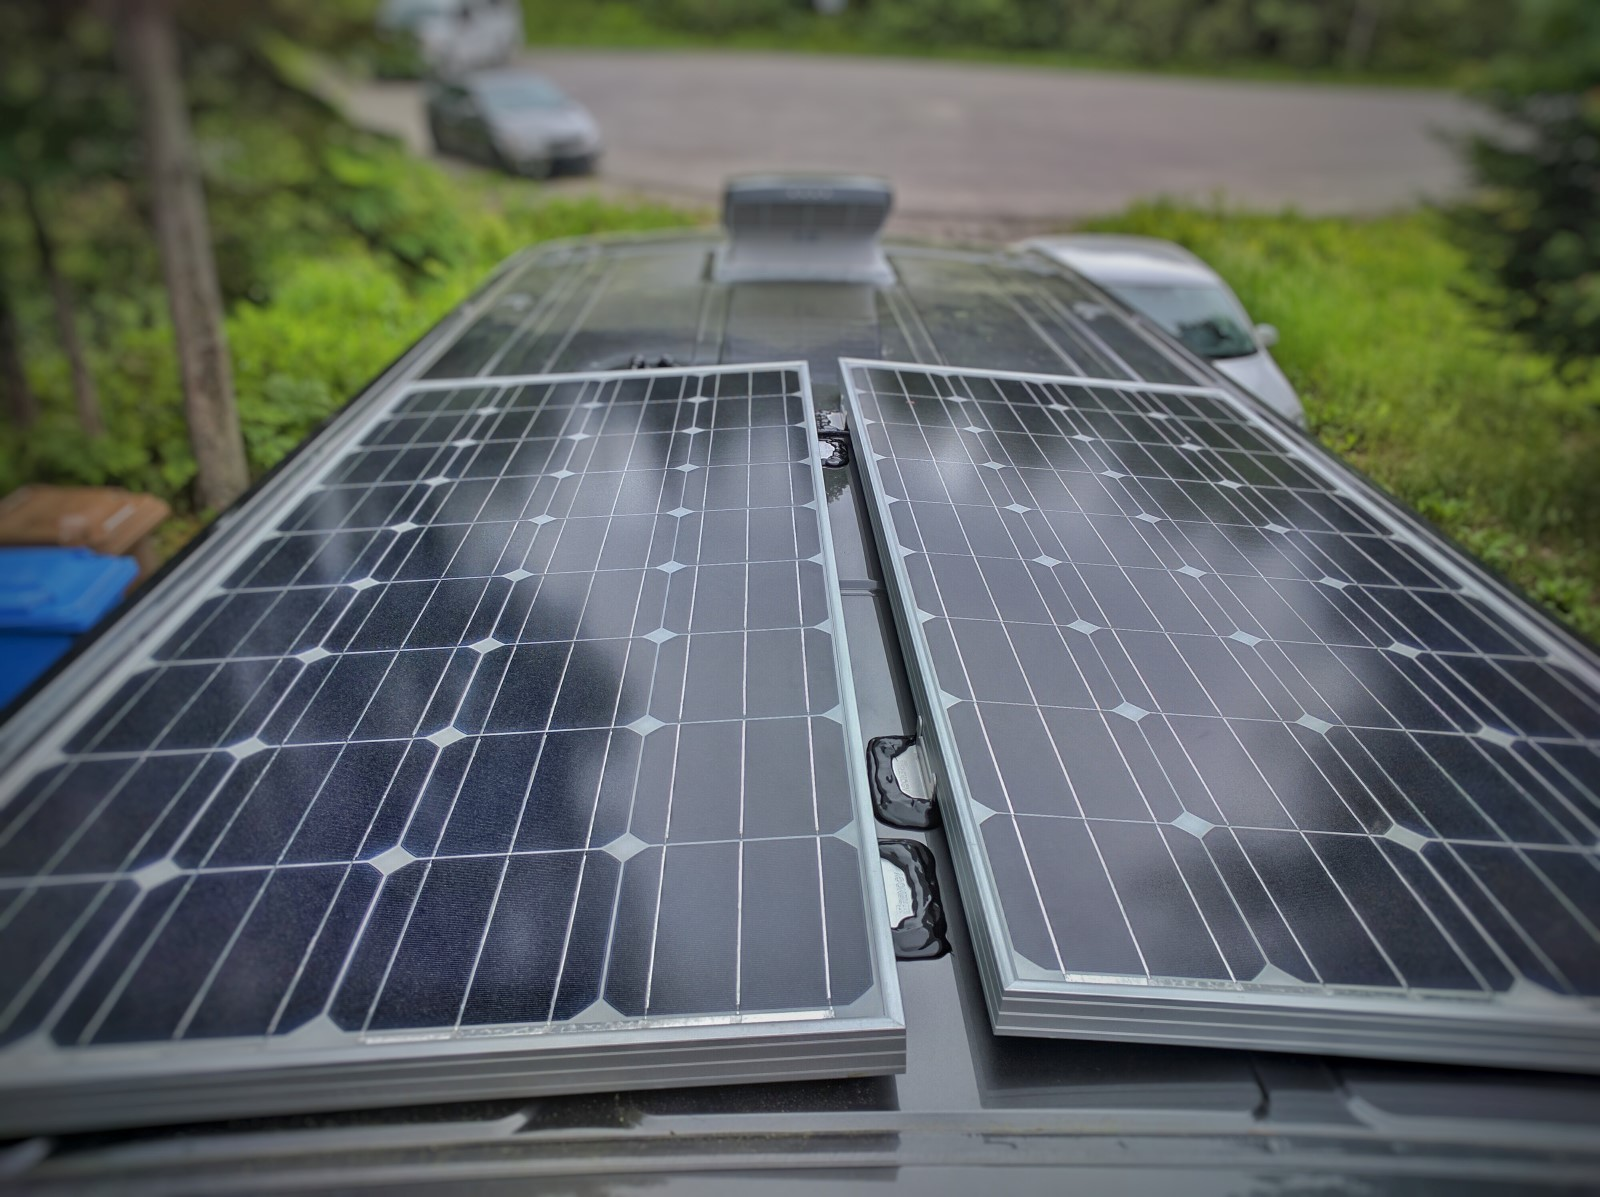 how to install solar panels on a camper van conversion with 3m vhb tape no holes  [ 1600 x 1197 Pixel ]